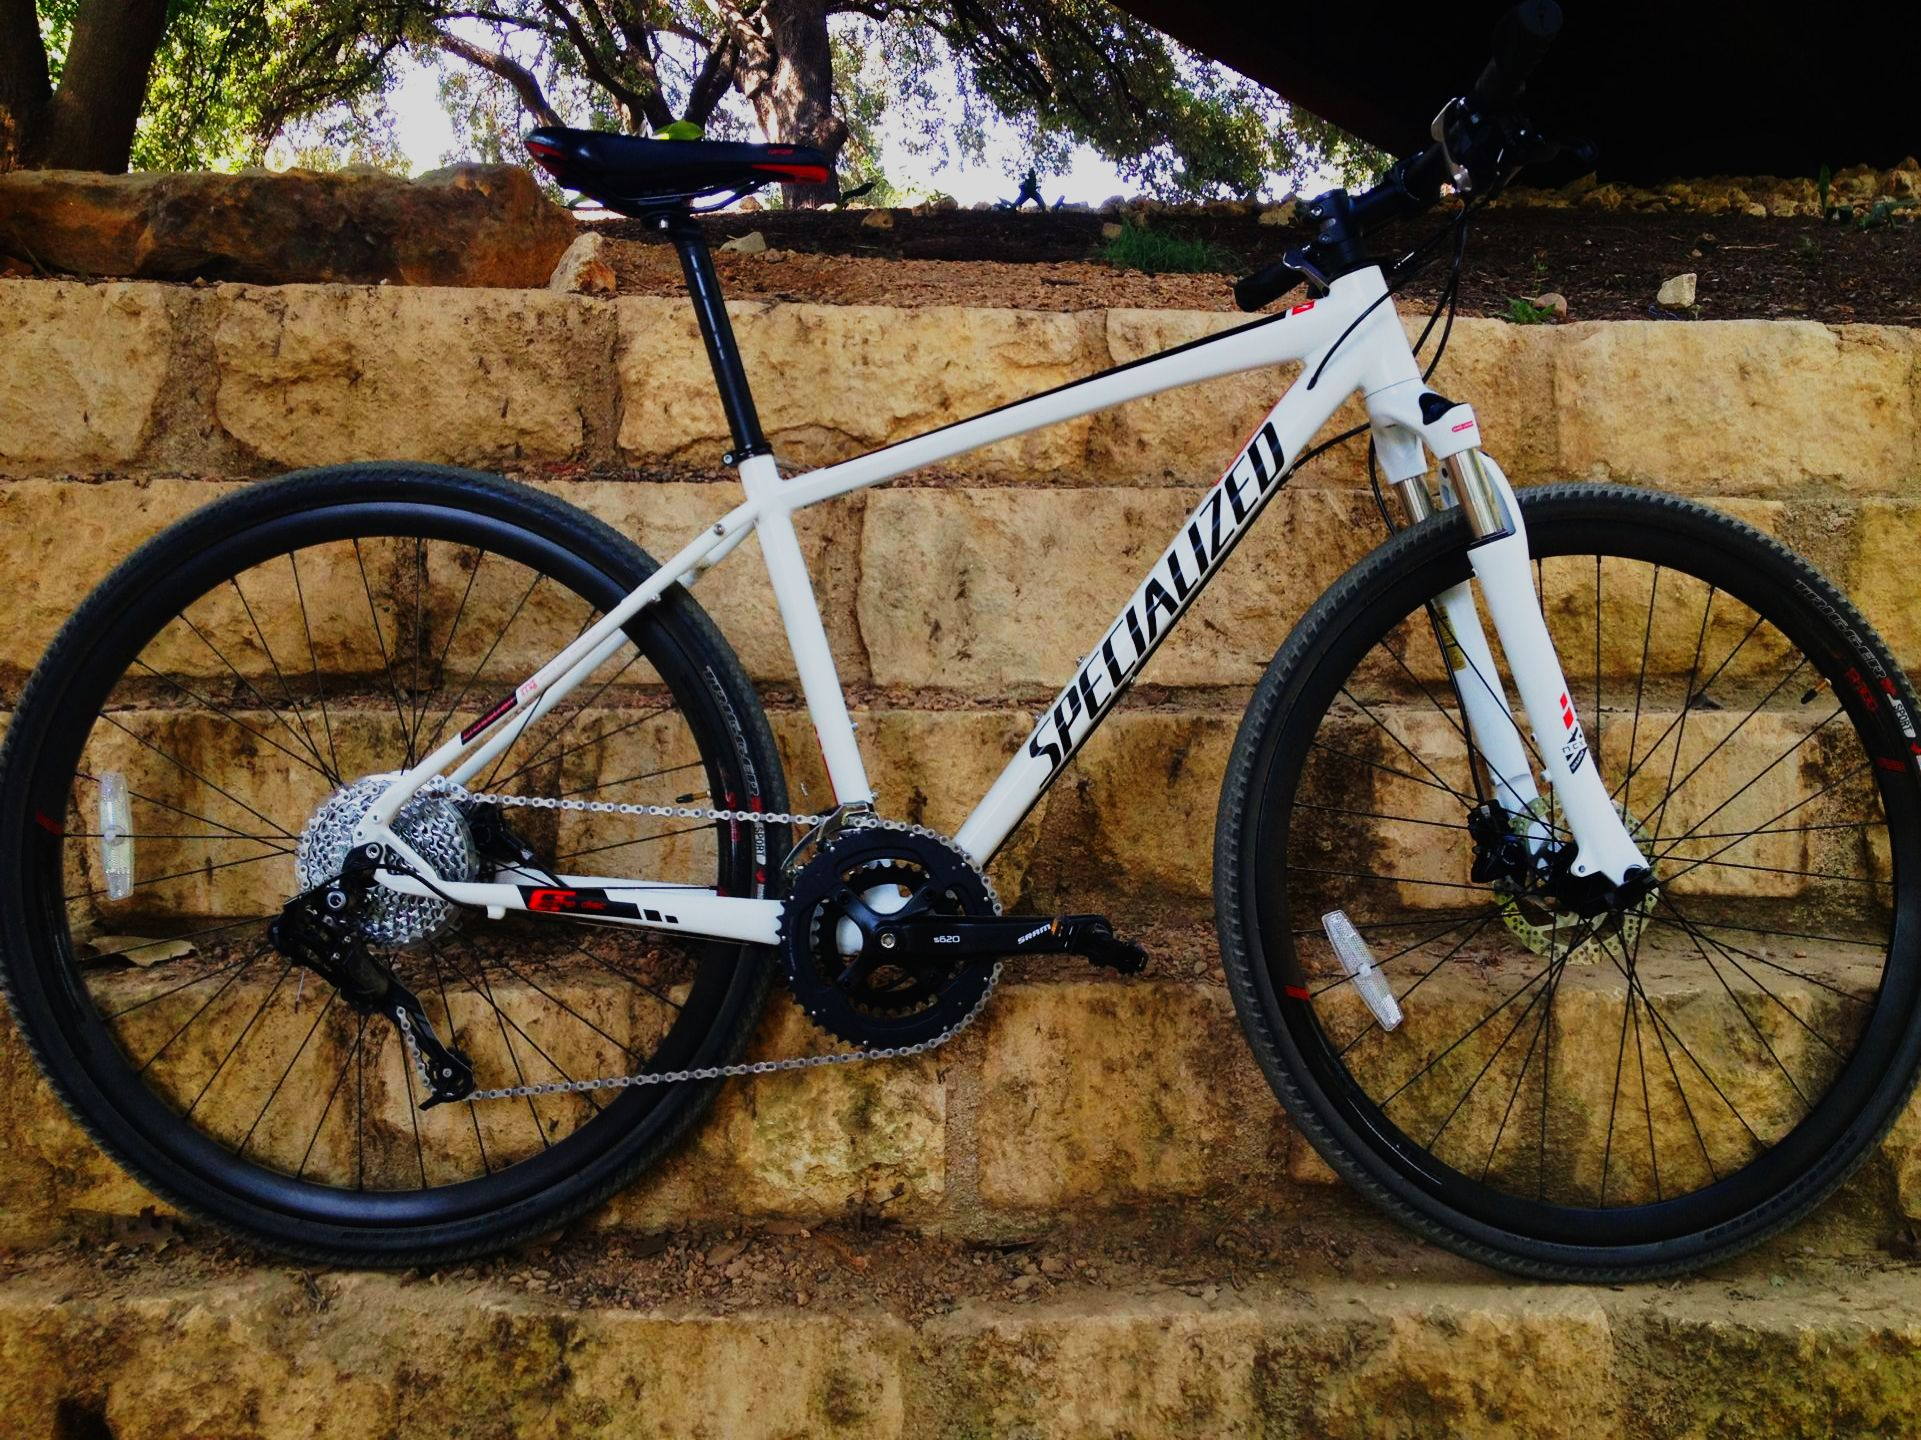 Ridden & Reviewed: A Preview Ride on the 2013 Specialized Crosstrail